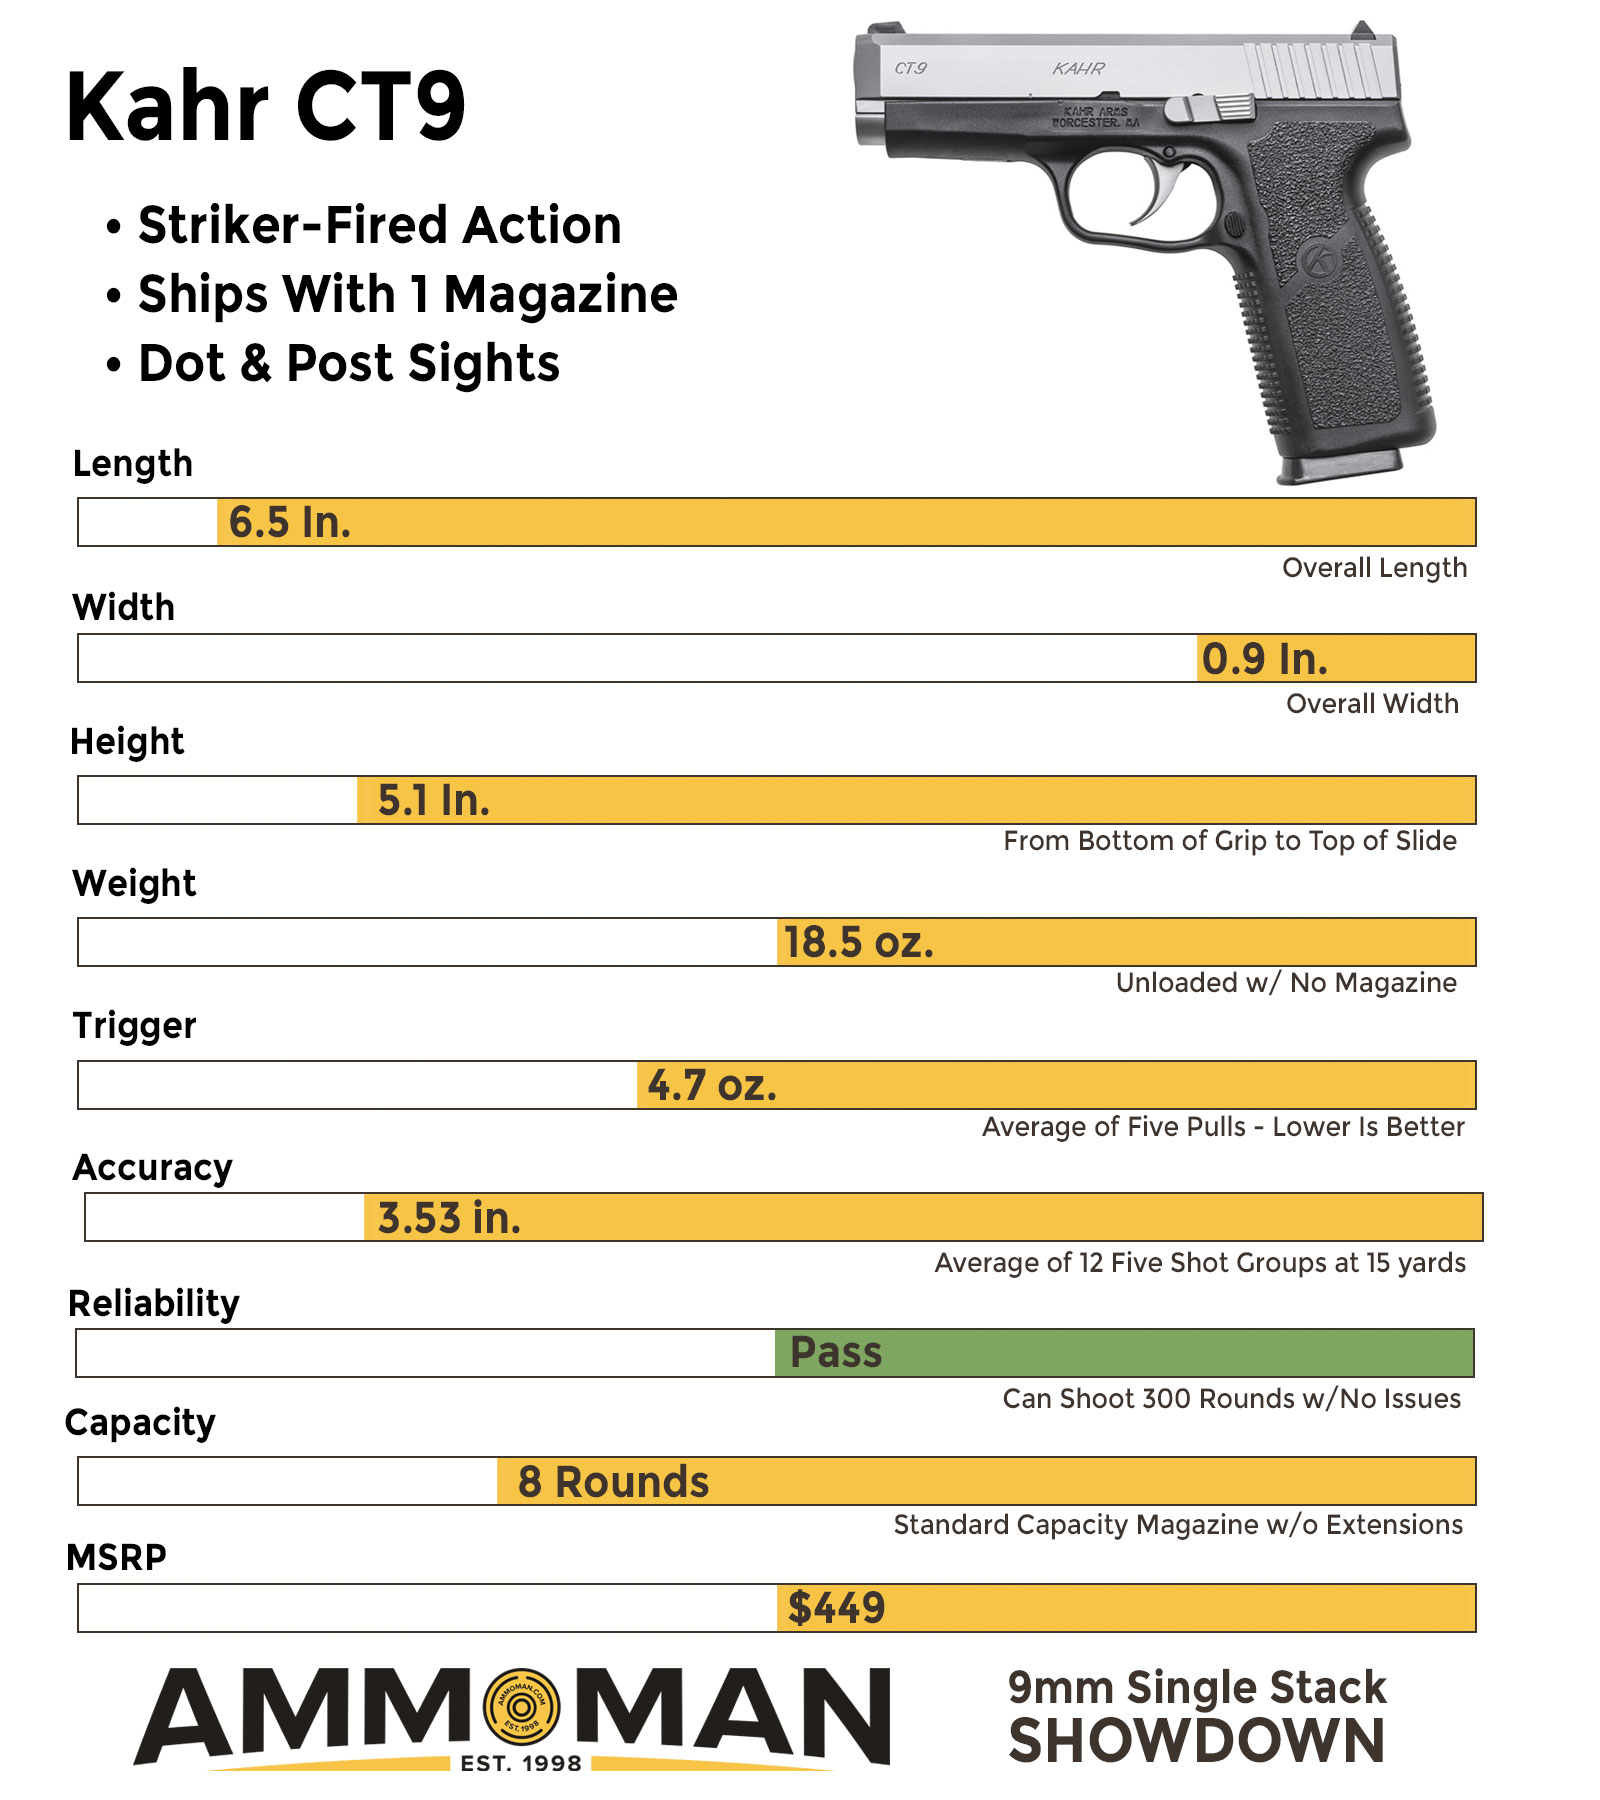 A look at how the Kahr CT9 compares to other compact pistols